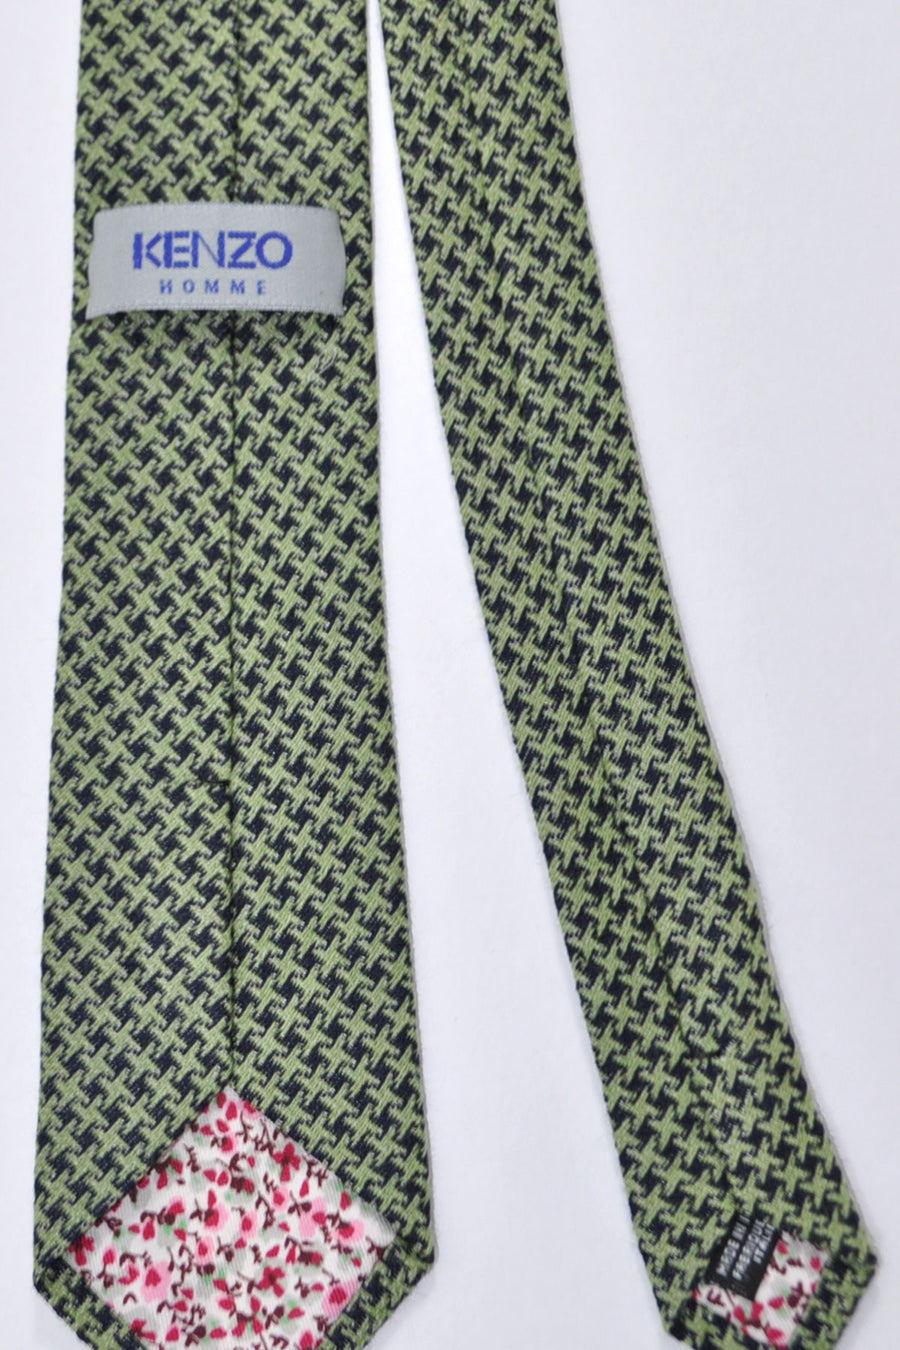 Kenzo Tie Green Black Geometric - Narrow Necktie